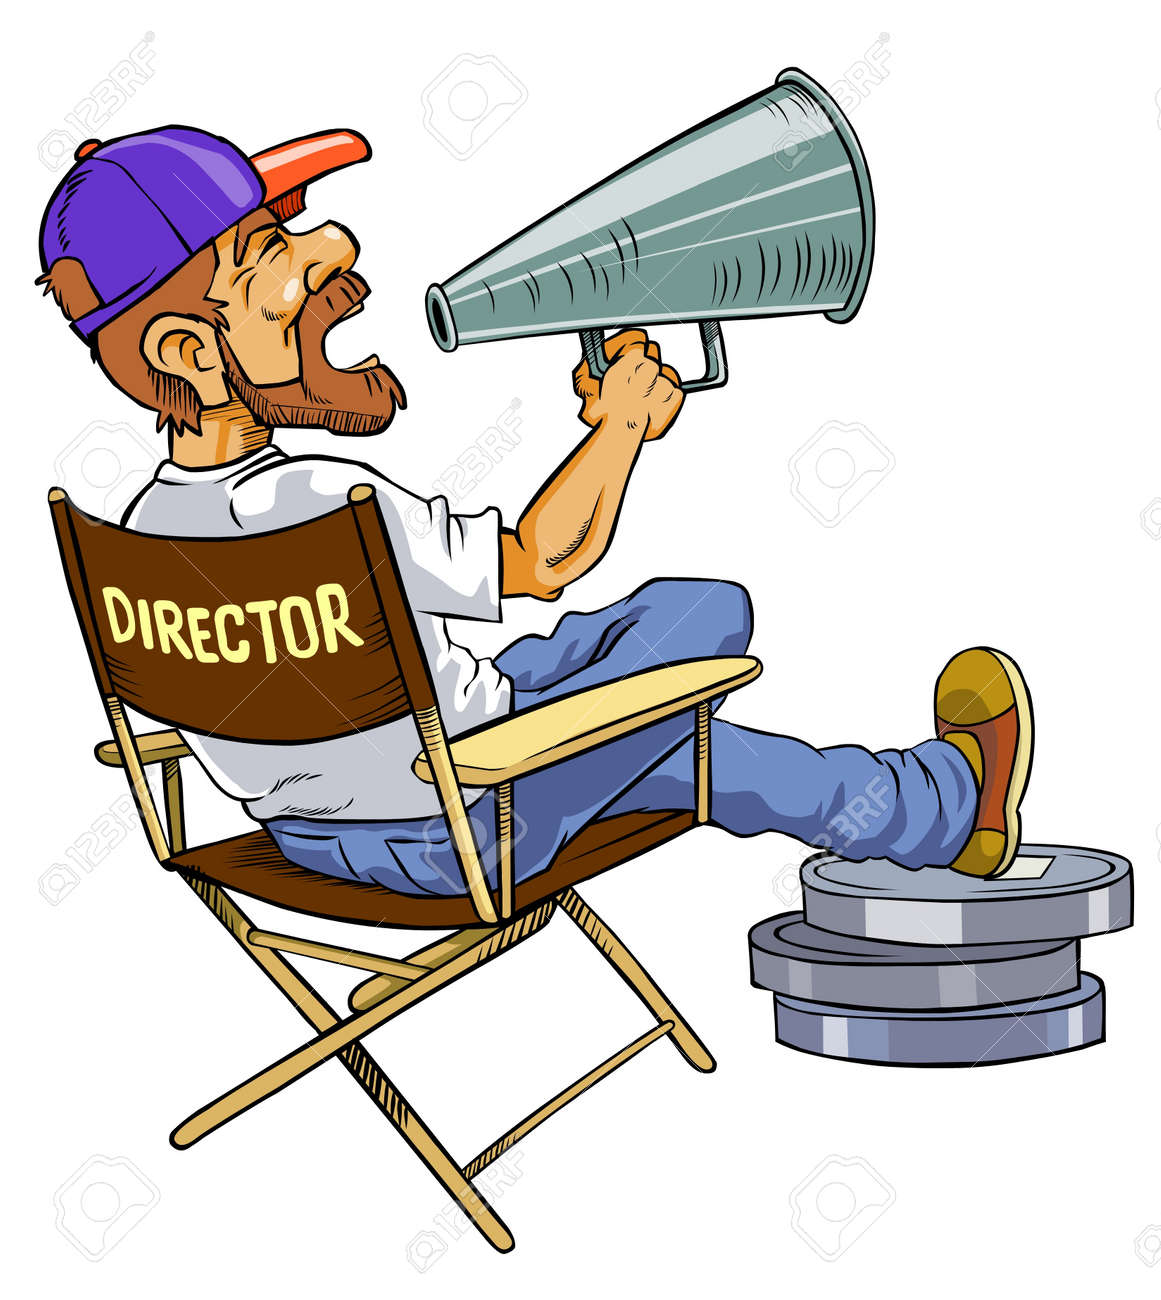 movie director royalty free cliparts vectors and stock